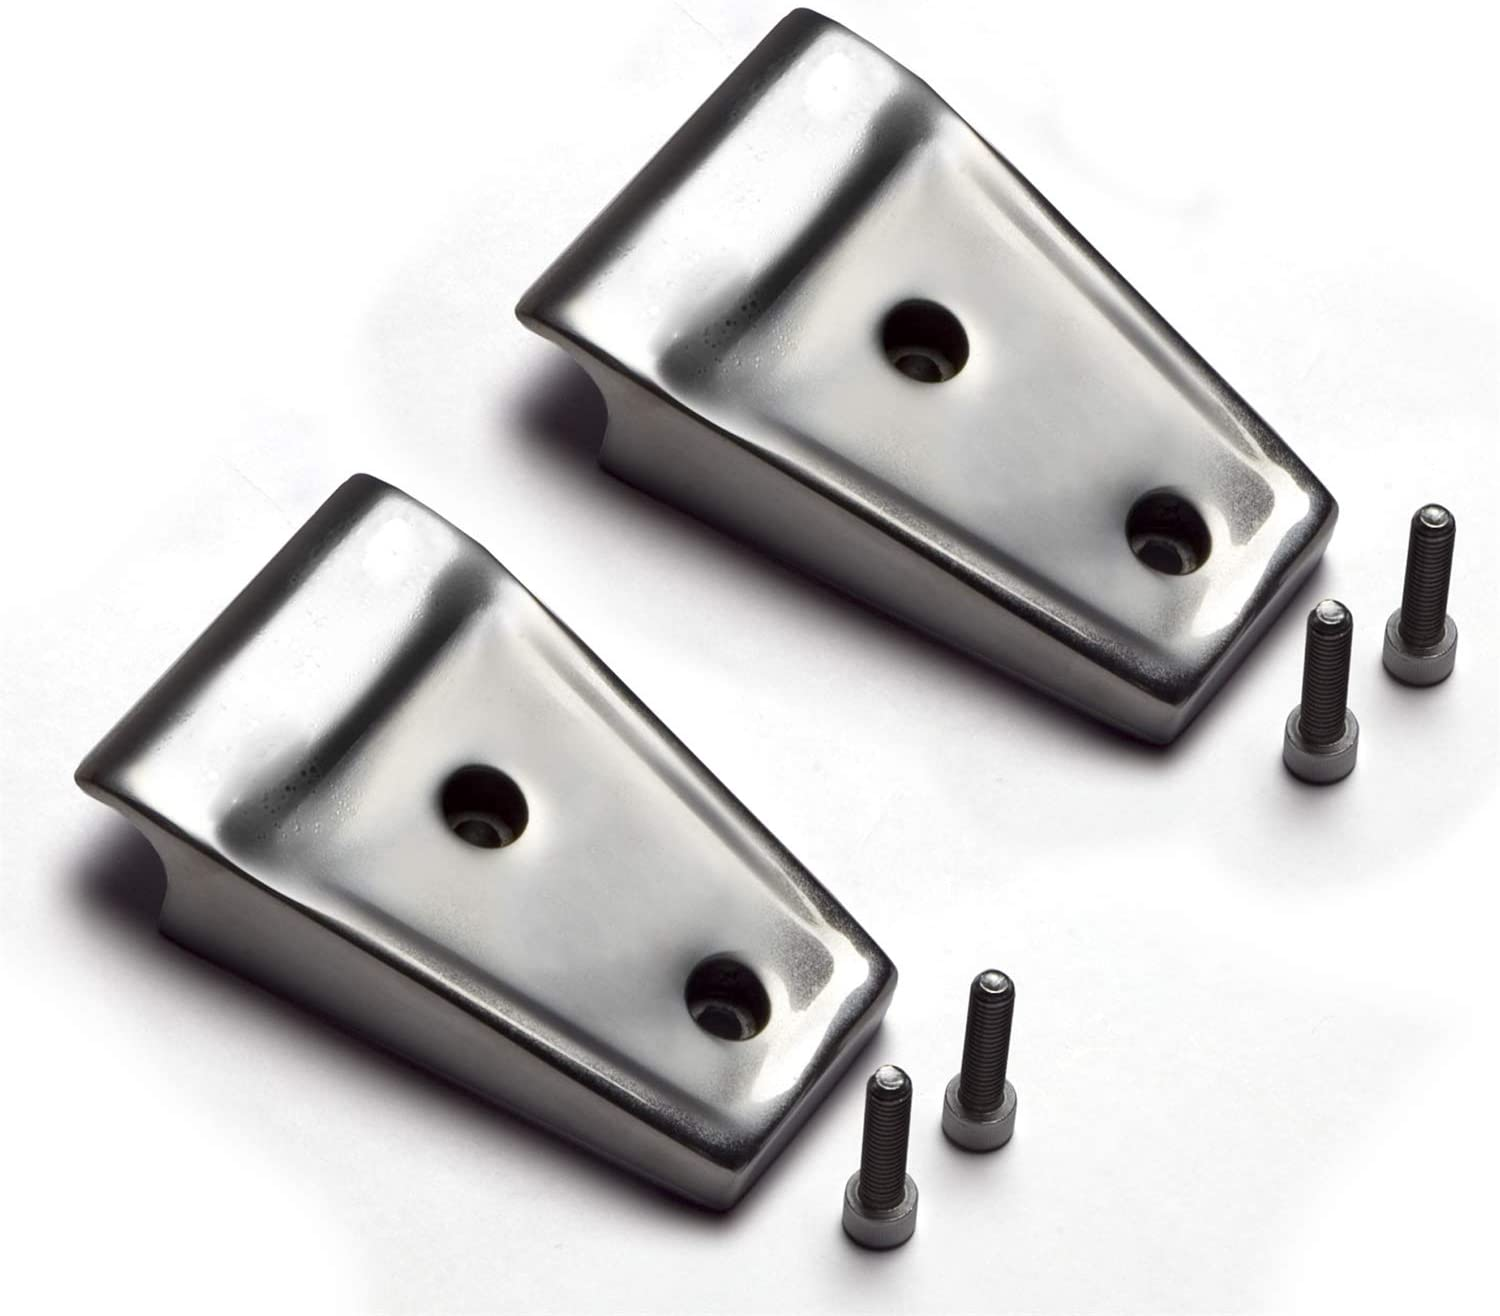 Rugged Be super welcome Ridge Max 61% OFF 11111.10 Hood Hinge Kit Stainless Cover 07- Steel;